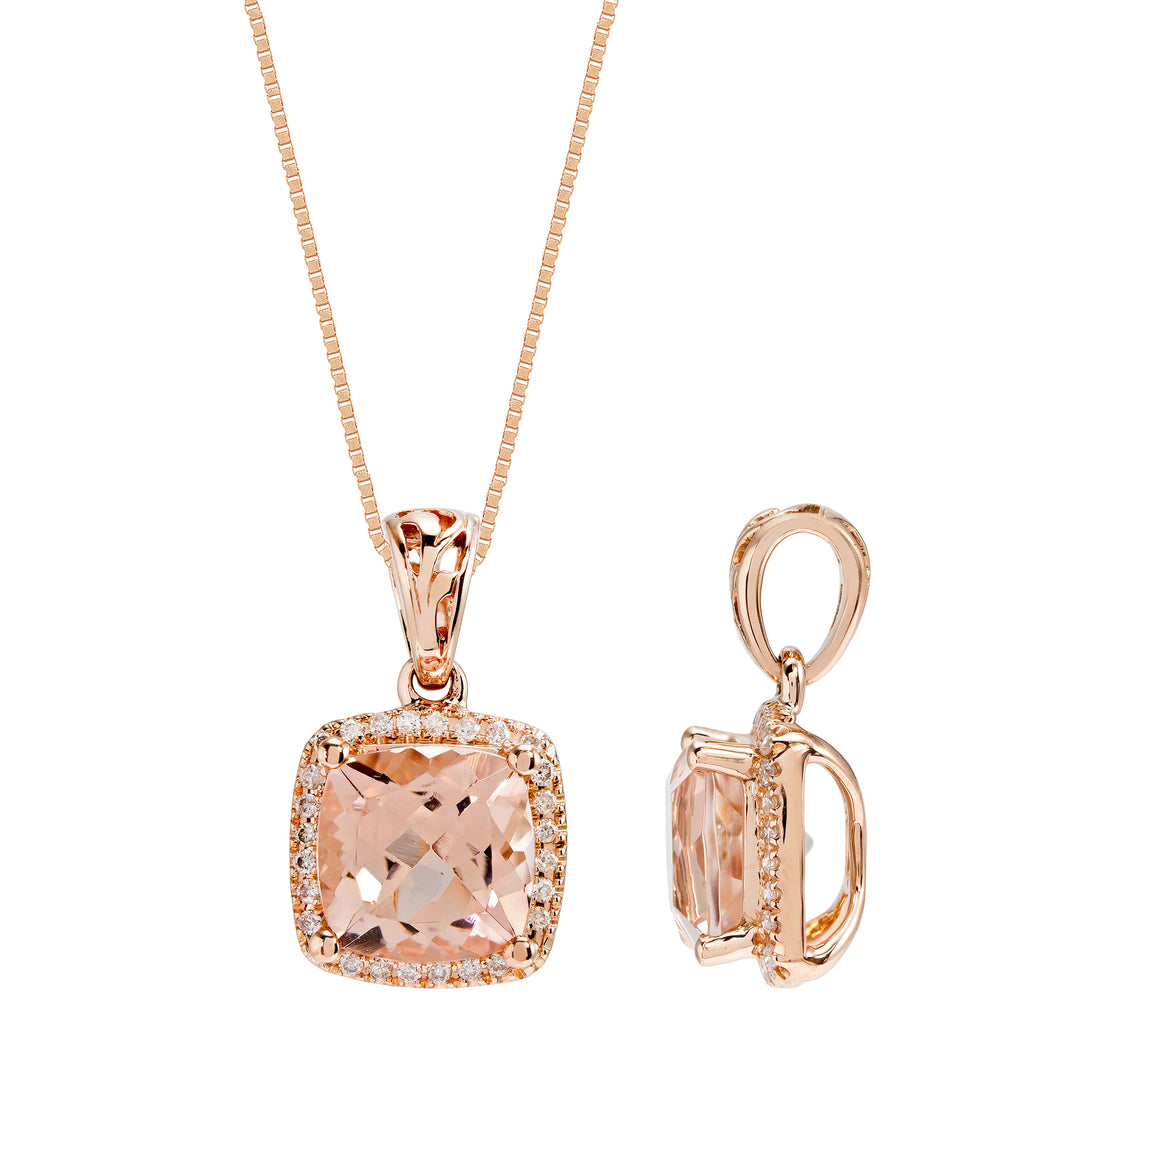 14kt Rose Gold Diamond and Morganite Pendant